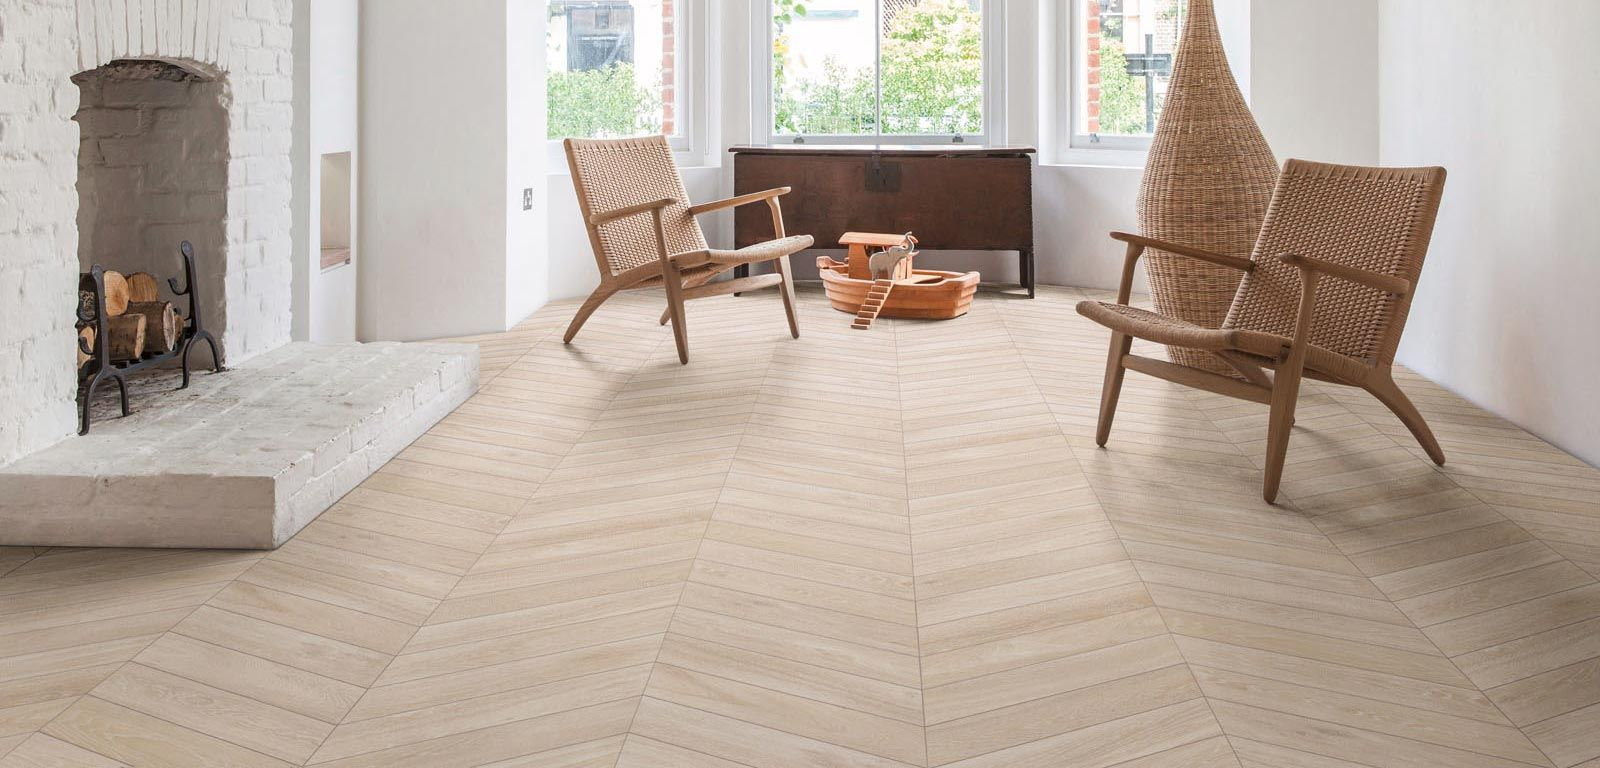 Woodchoice The Wood Effect Stoneware That Recalls The Parquet Of Bygone Days Wood Effect Tiles Floor Design Tile Design